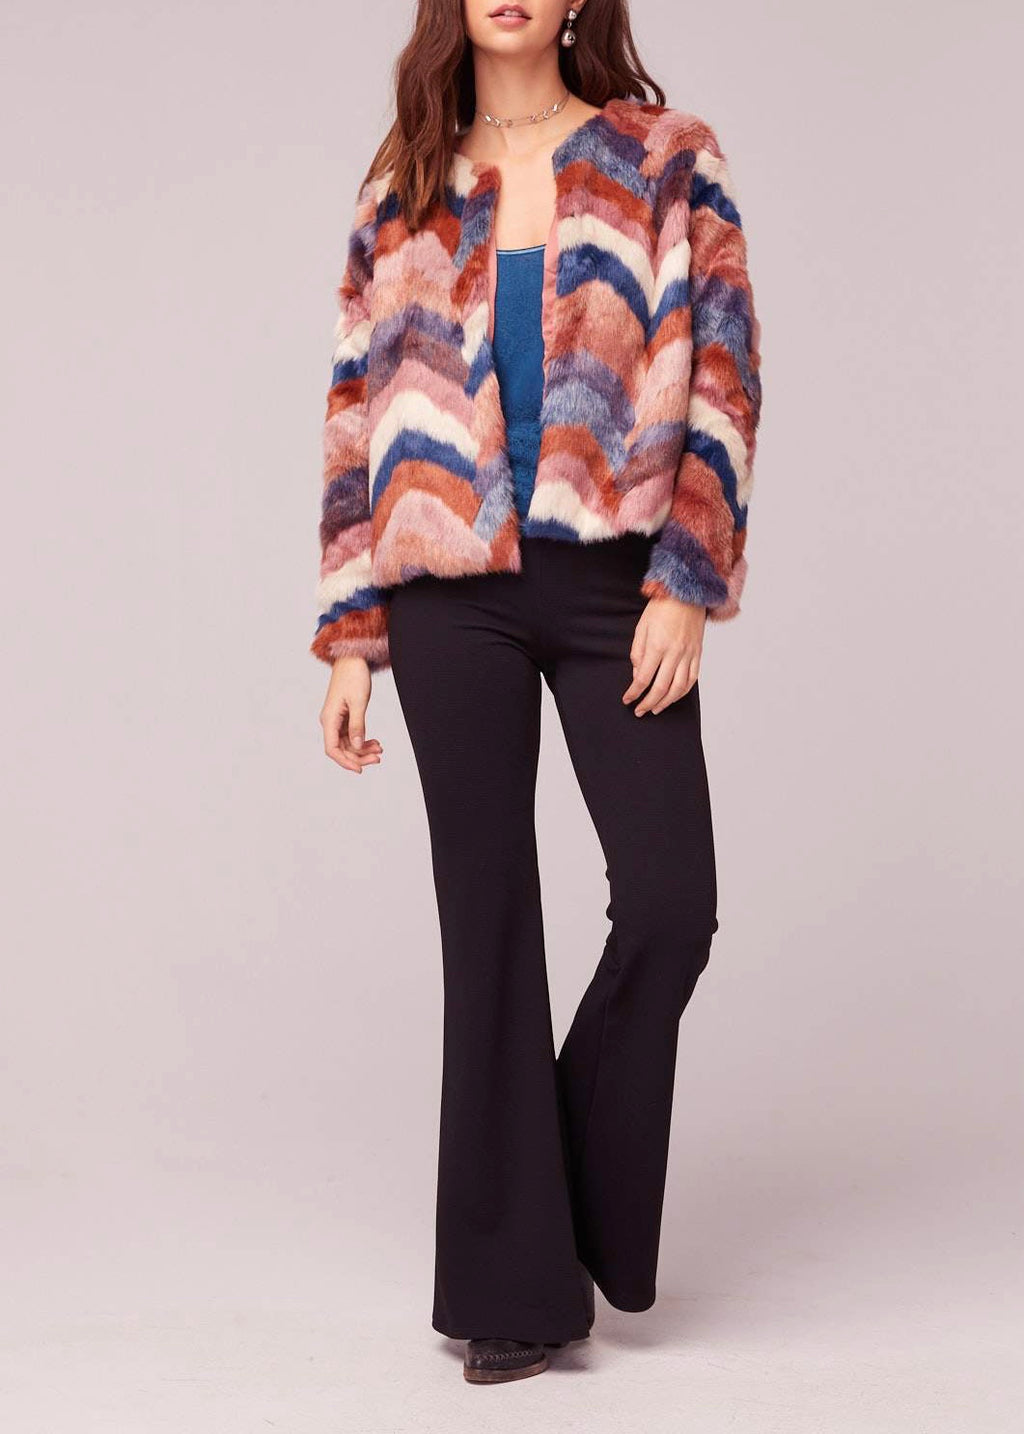 Haze Faux Fur Jacket